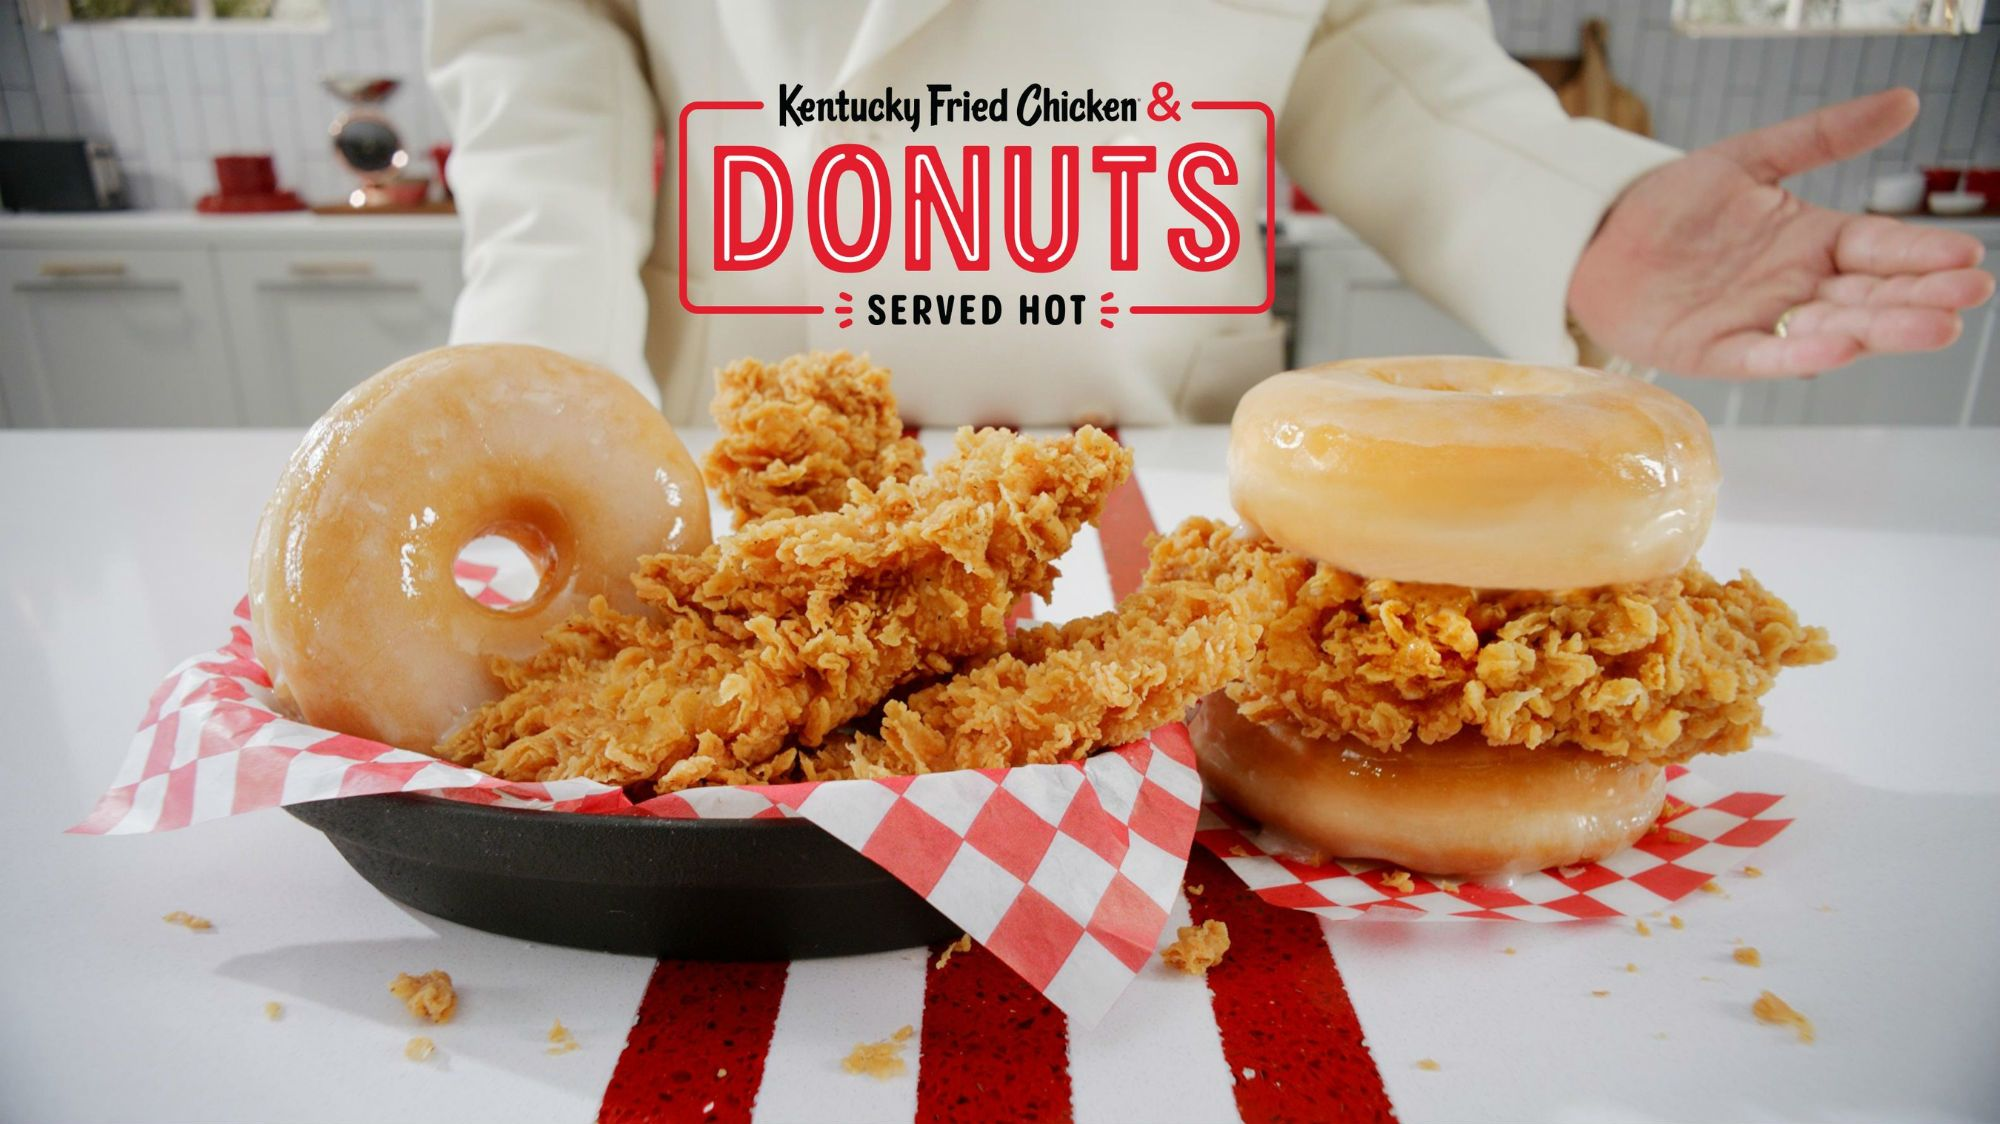 Coming Soon to a KFC Near You: Fried Chicken and Donuts